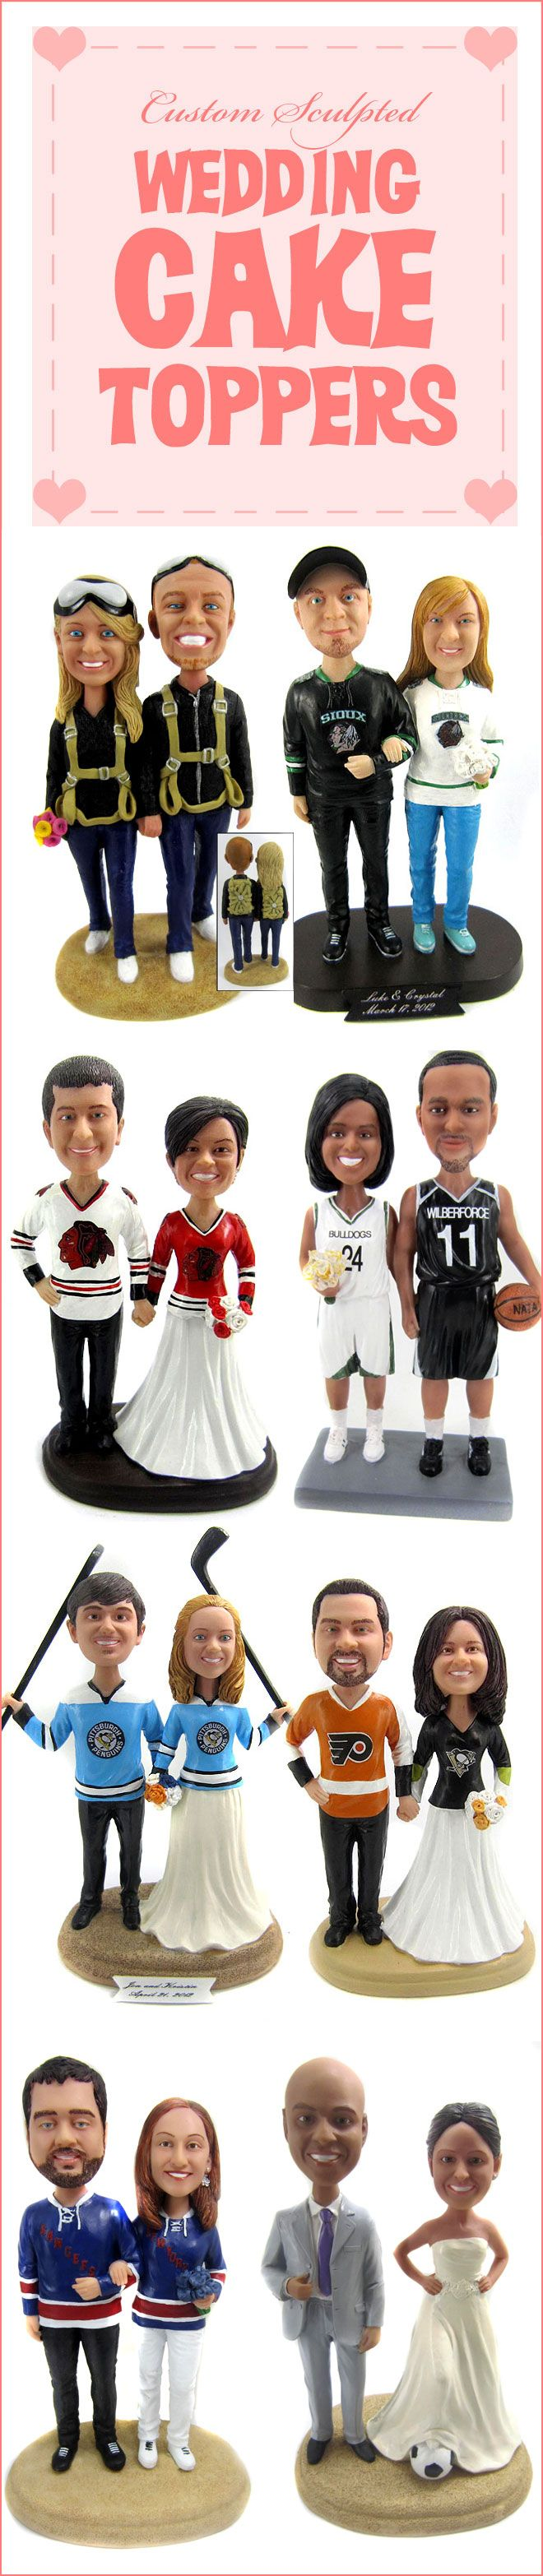 Custom sports cake toppers with your faces, jersey color, number and names!